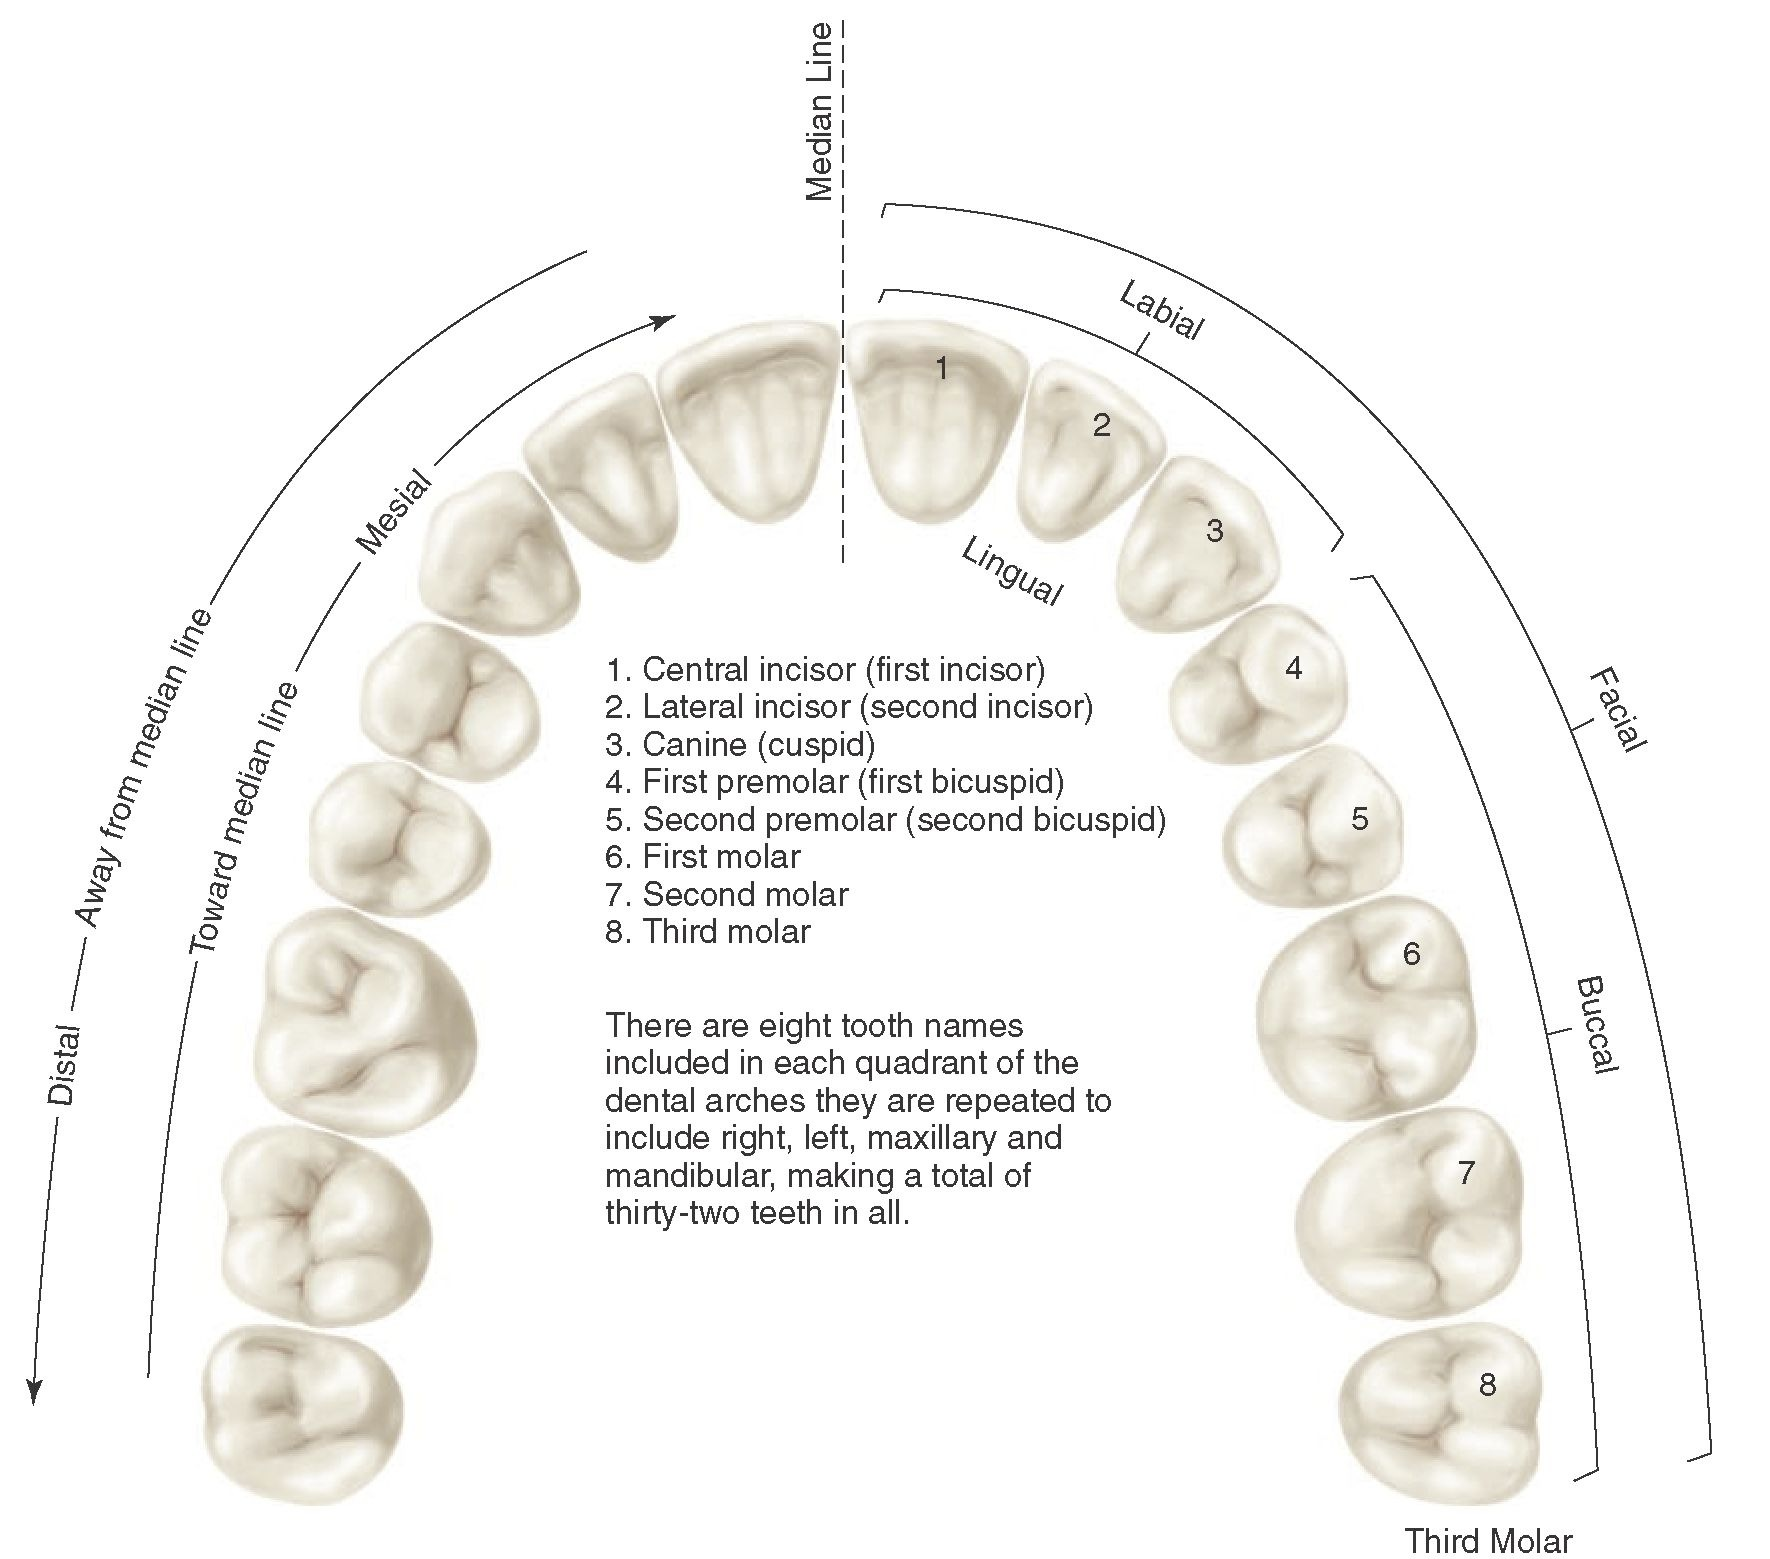 Introduction to Dental Anatomy (Dental Anatomy, Physiology and ...